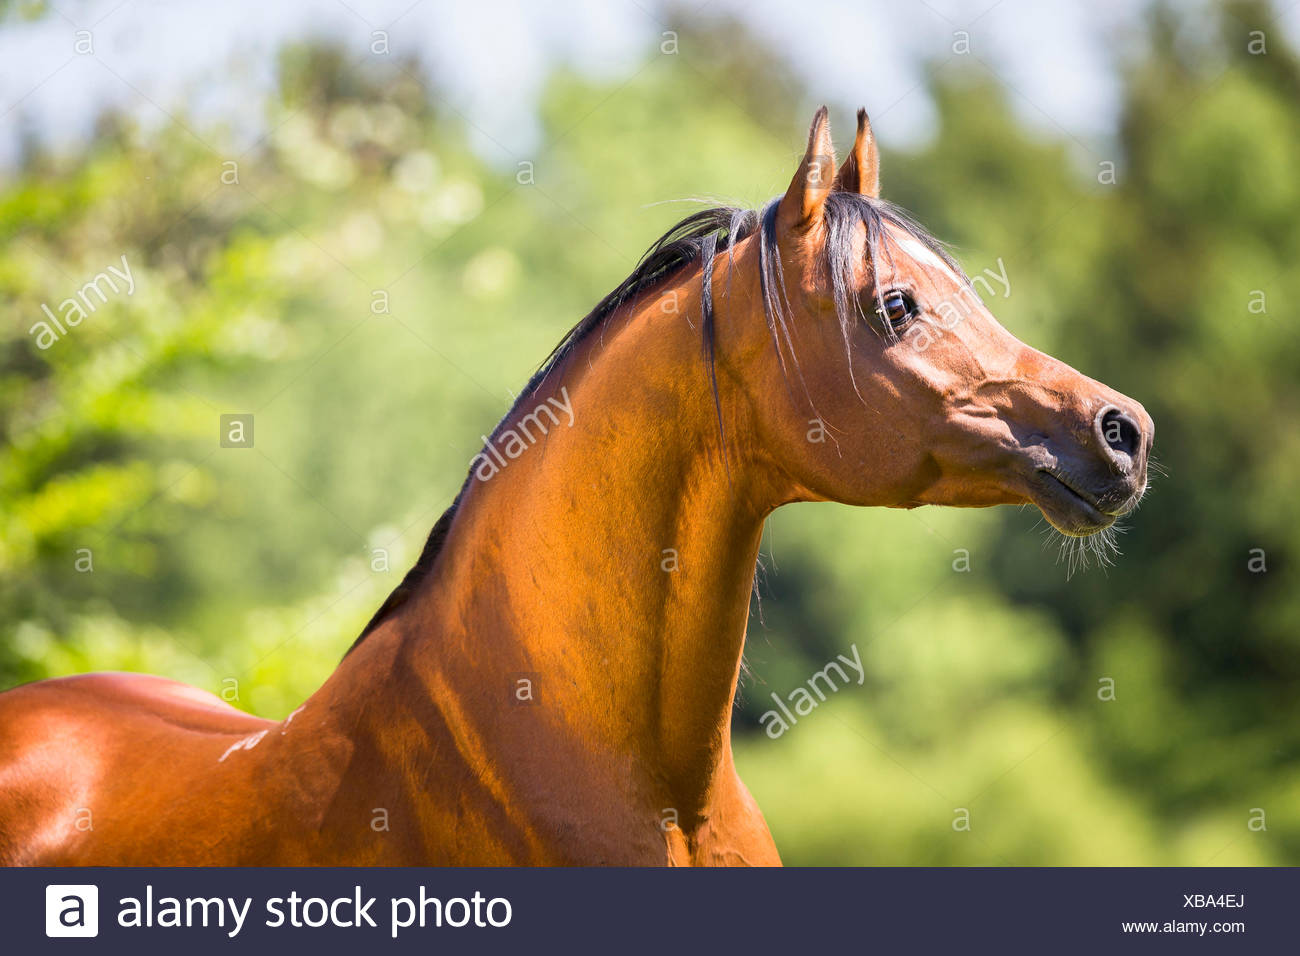 Arab Horse, Arabian Horse. Portrait of bay stallion. Switzerland - Stock Image